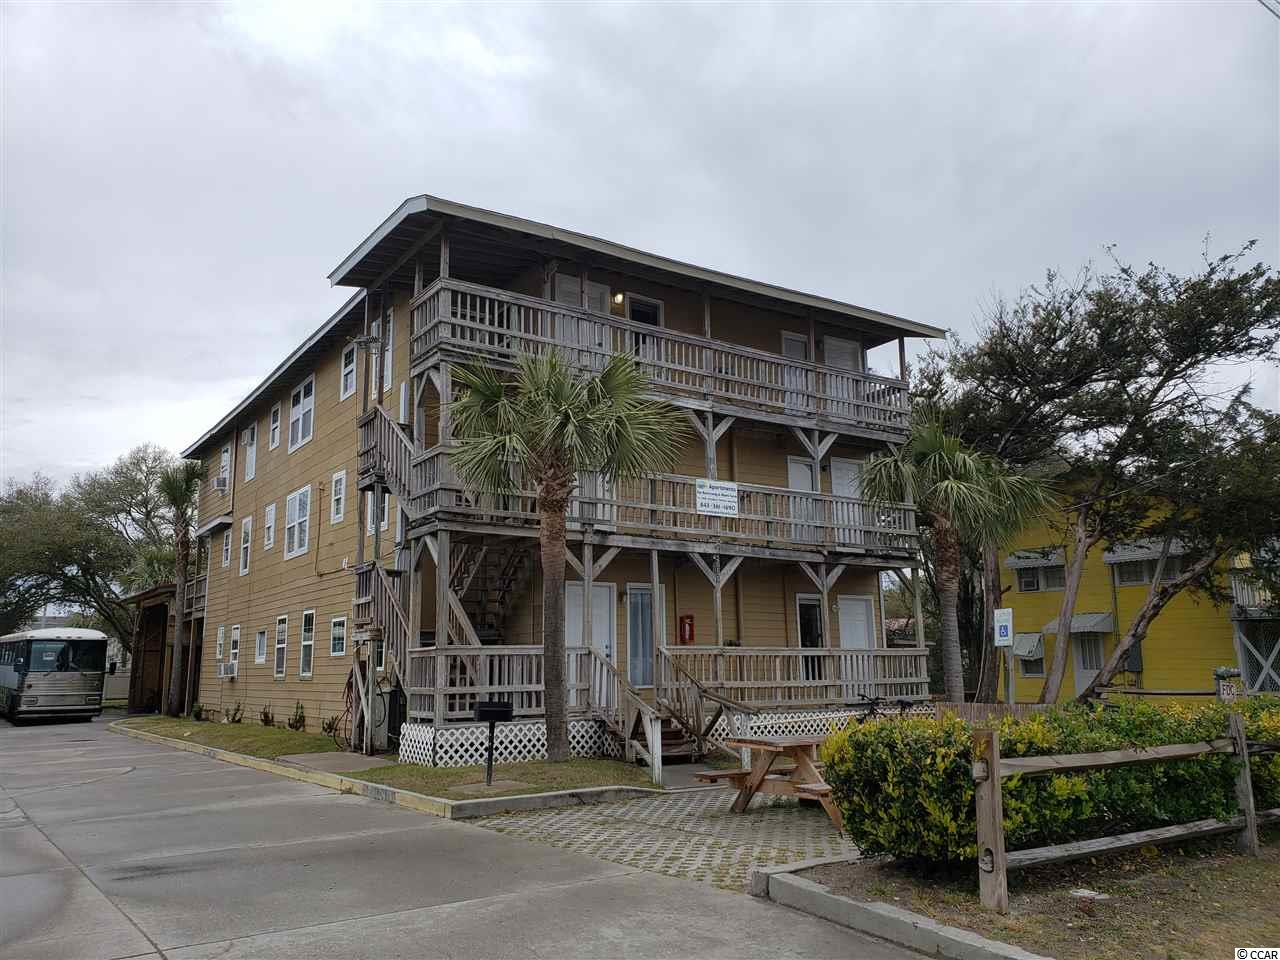 Nine units for sale at the heart of North Myrtle Beach, just 1 block from S. Ocean Blvd. and 1 block from the hub of shops and attractions on Main St.  Walk to the ocean/beach and then walk to all of the fun activities.  ou won't have to worry about finding a parking spot.  all units are up to building codes.  There are three 1 bedroom, 1 bath units, two 2 bedroom, 1 bath units, and four 2 bedroom, 2 bath units.  This property is be sold as a package with a second listing for an adjoining property at 211 1st Ave S. The owner reserves the right to refuse to sell this property separate from the other listing.  ENTRY TO THE INTERIOR IS NOT AUTHORIZED!